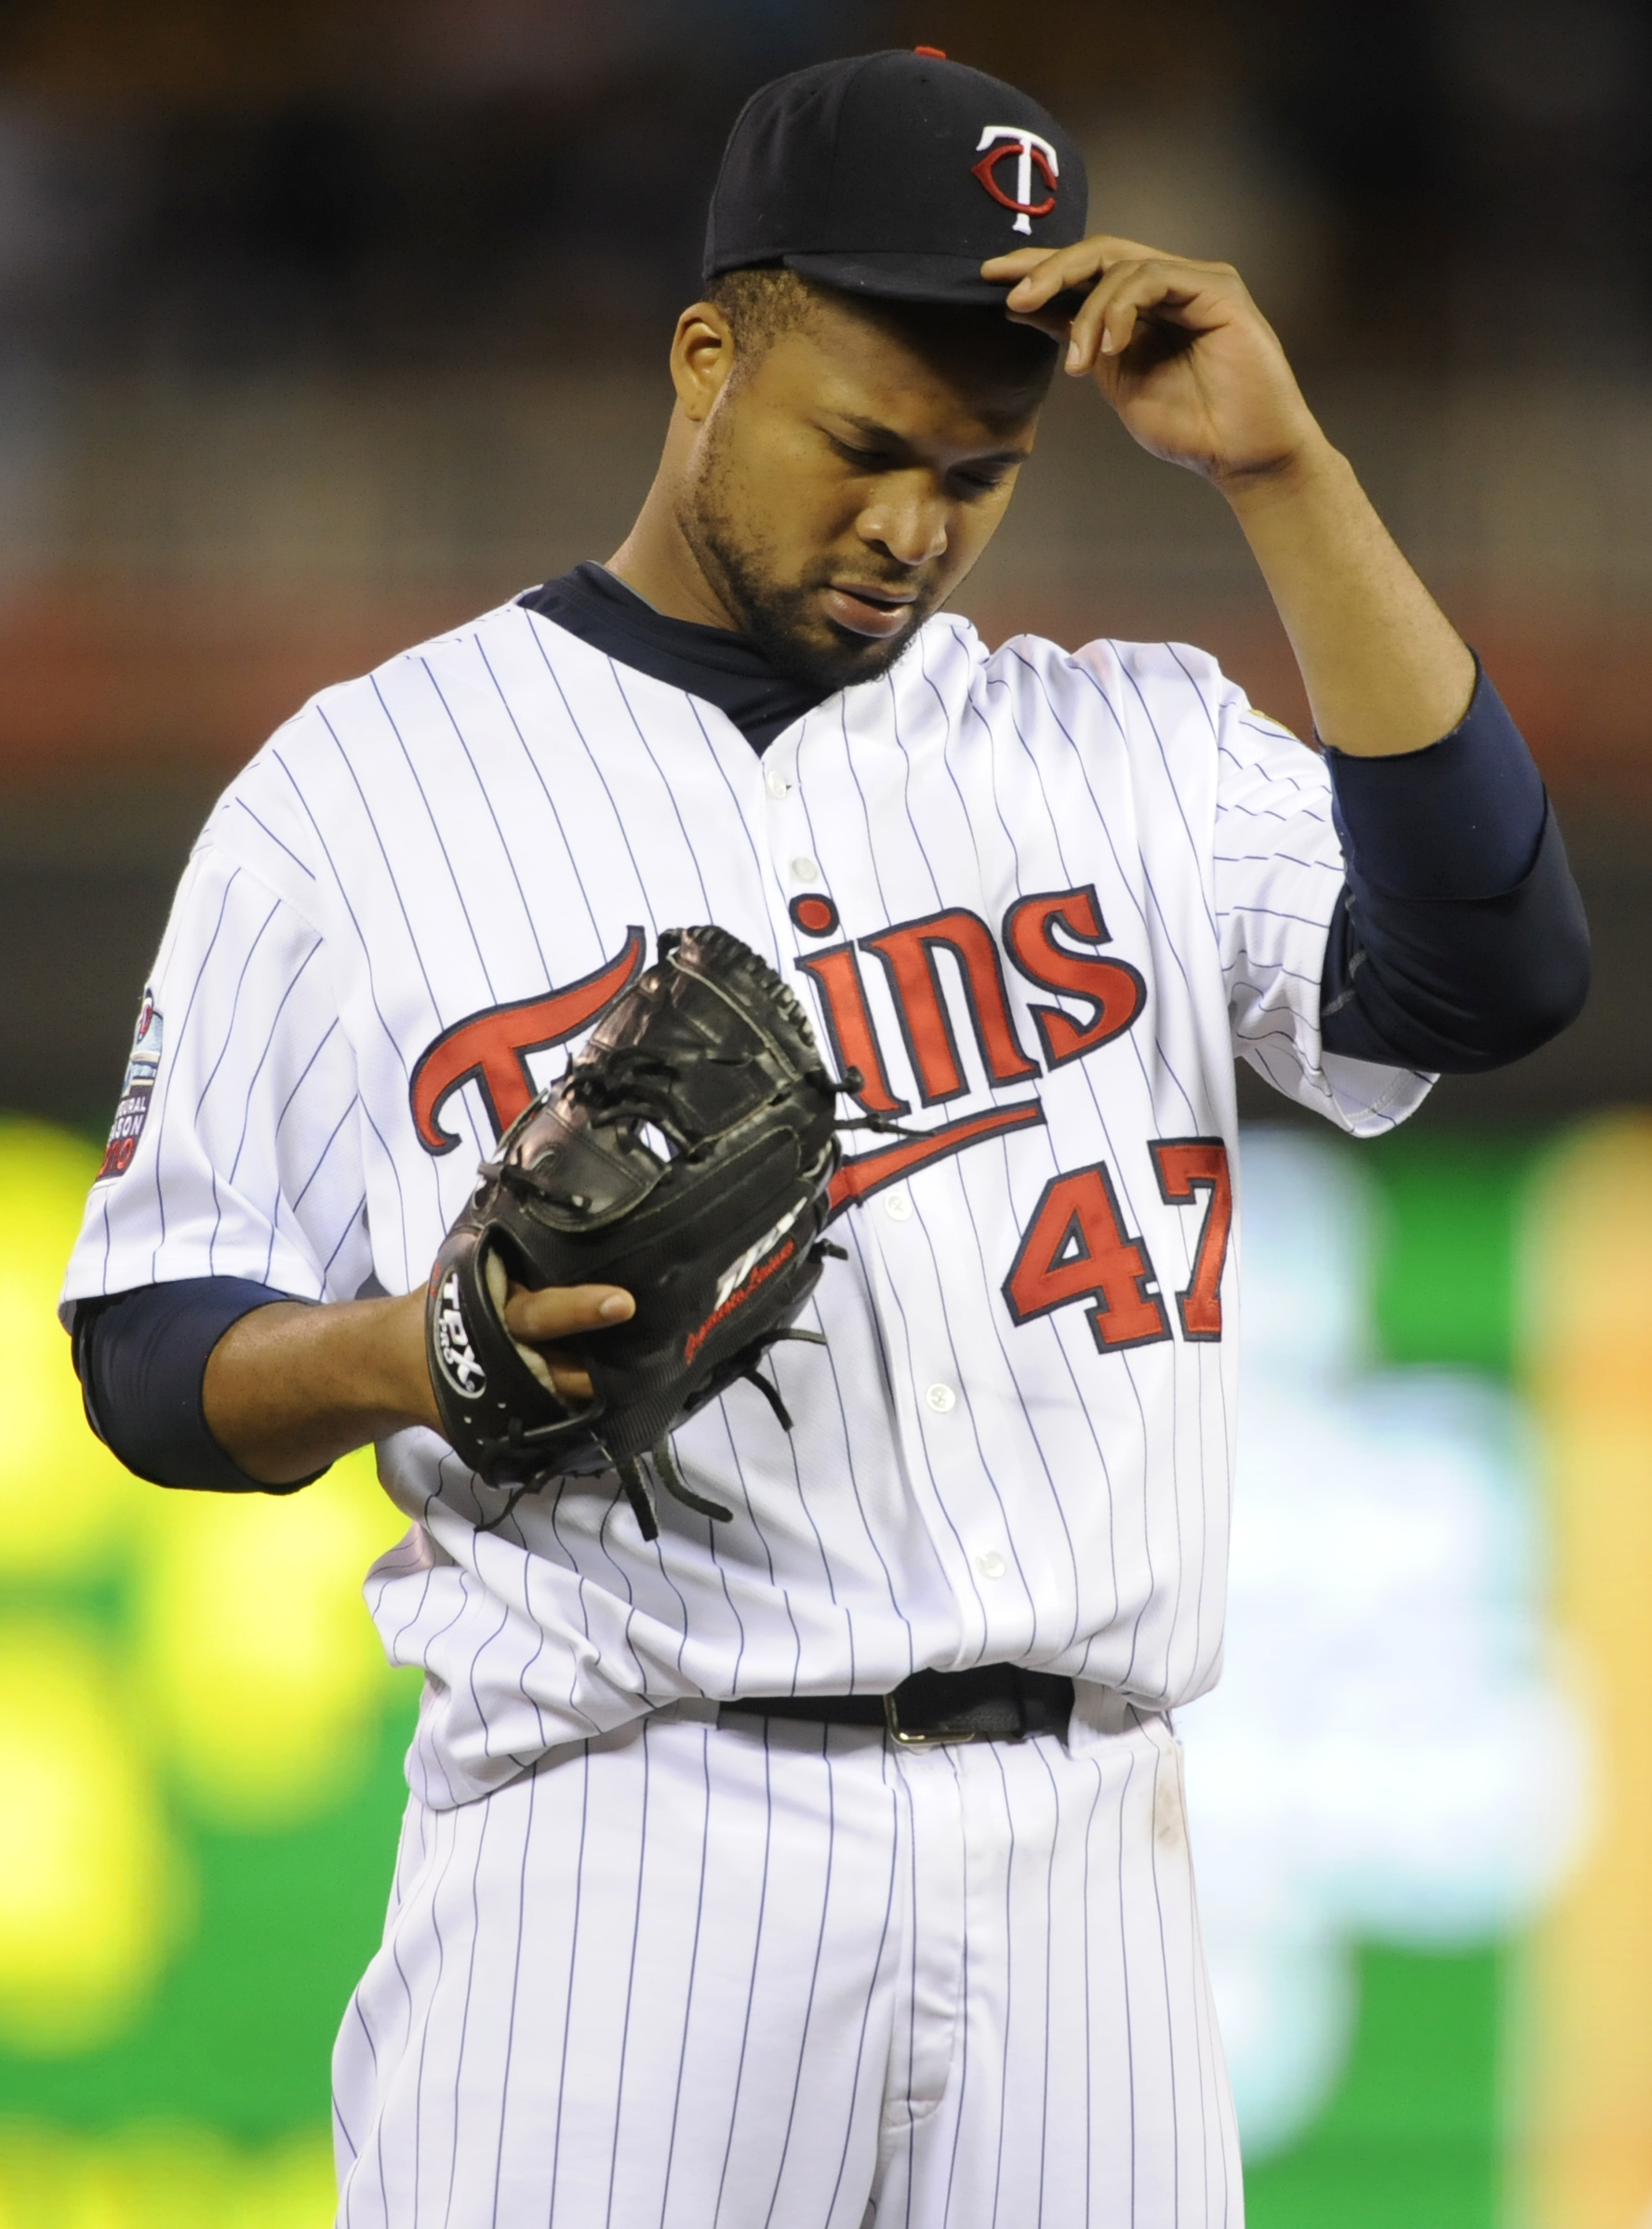 MINNEAPOLIS, MN - OCTOBER 6: Francisco Liriano #47 of the Minnesota Twins reacts during game one of the ALDS against the New York Yankees on October 6, 2010 at Target Field in Minneapolis, Minnesota. (Photo by Hannah Foslien /Getty Images)